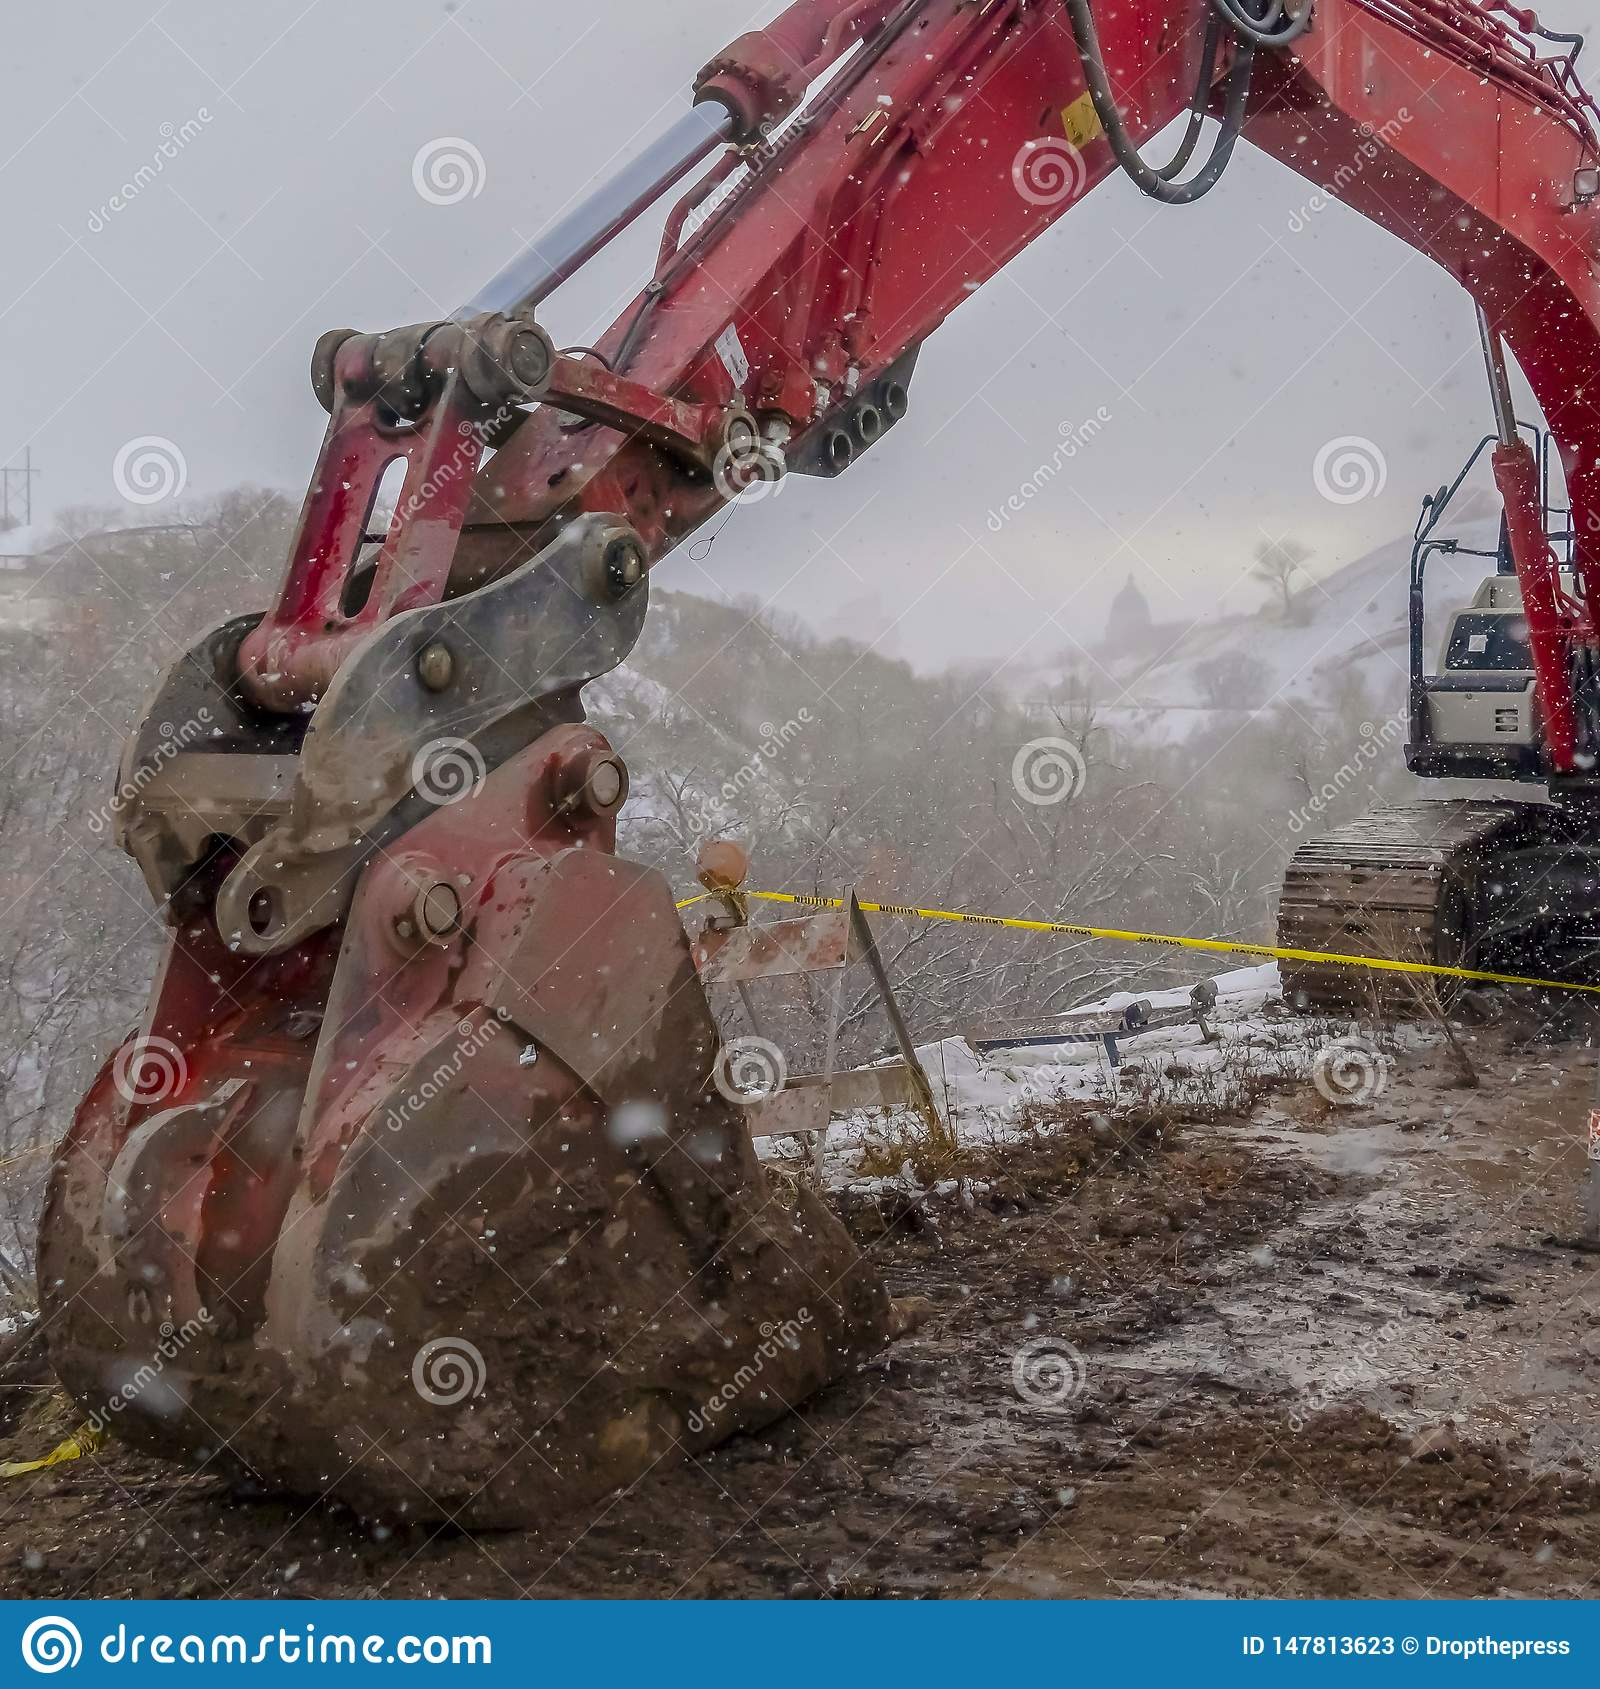 Clear Square Red excavator and barricade on a muddy mountain road viewed in winter